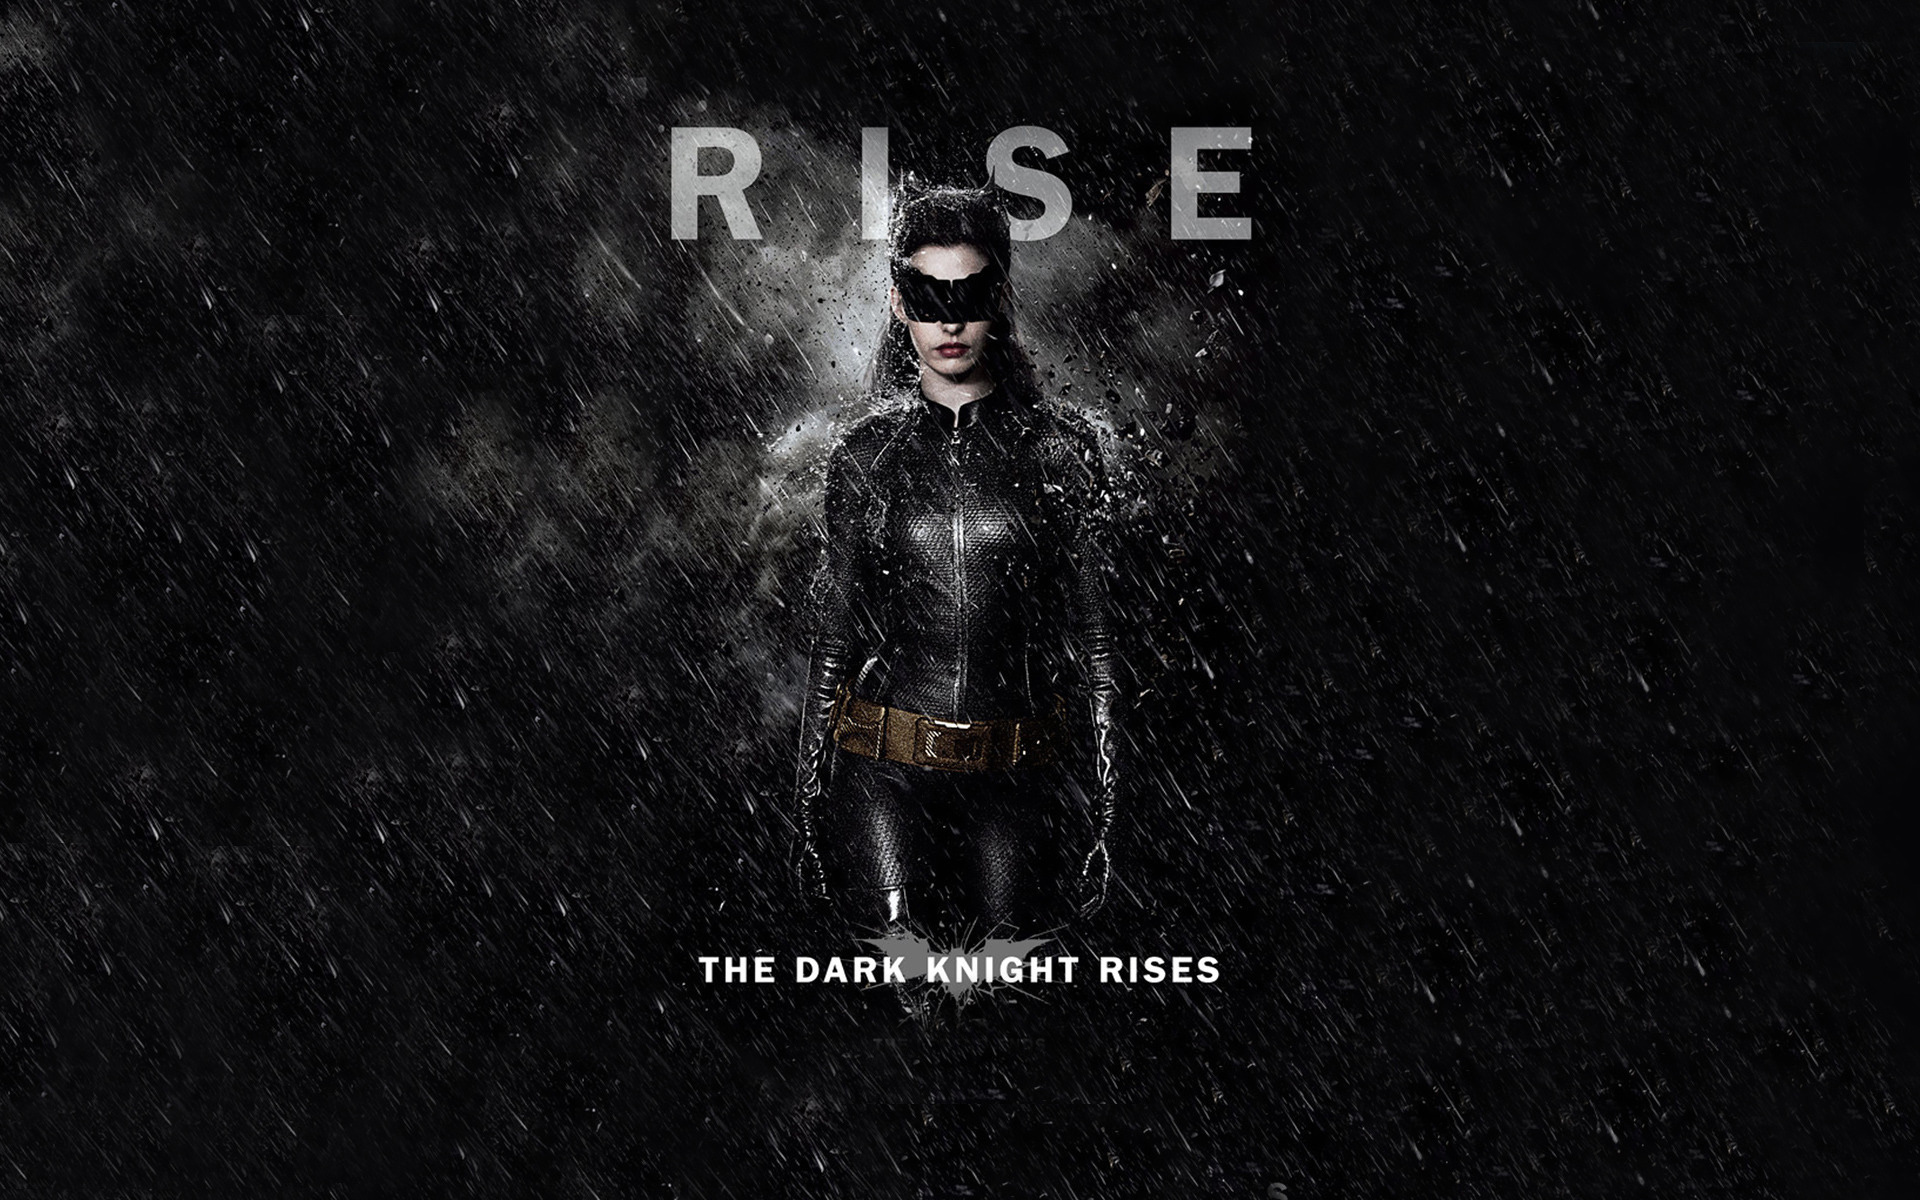 Catwoman The Dark Knight Rises wallpaper